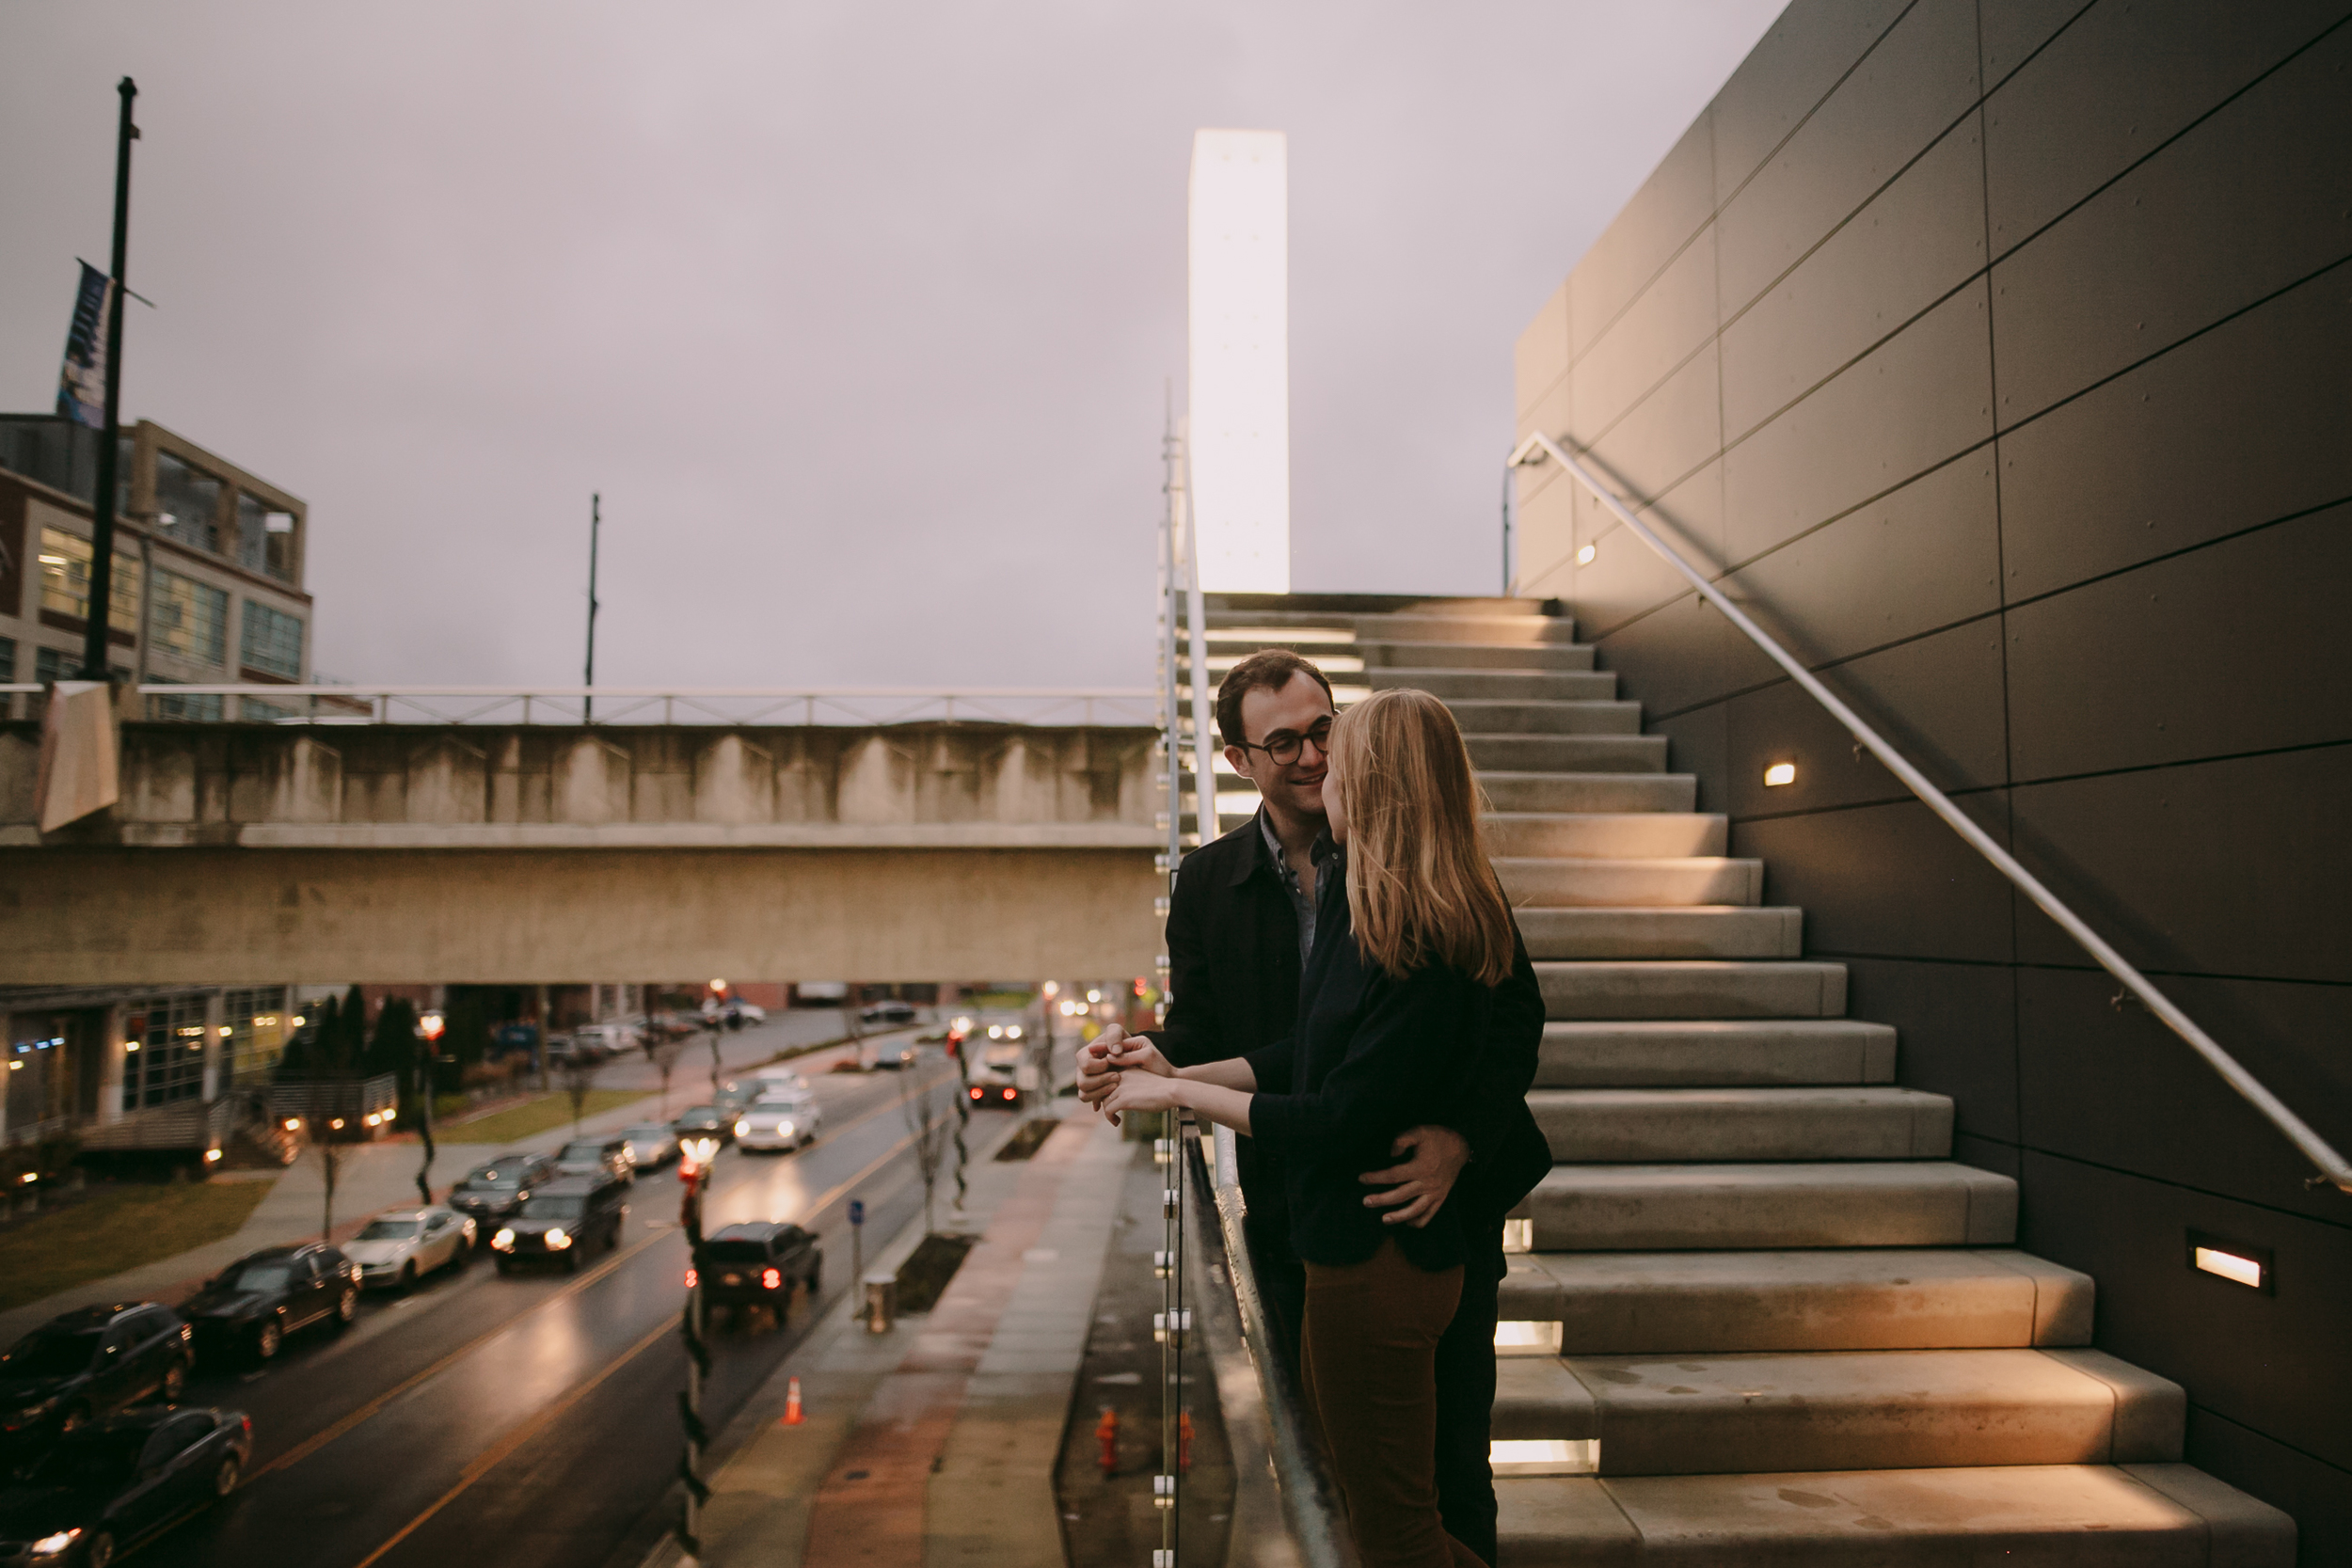 Cameron + Joe Engagement Photos in The Gulch Nashville Photography Anthology (17 of 24).jpg